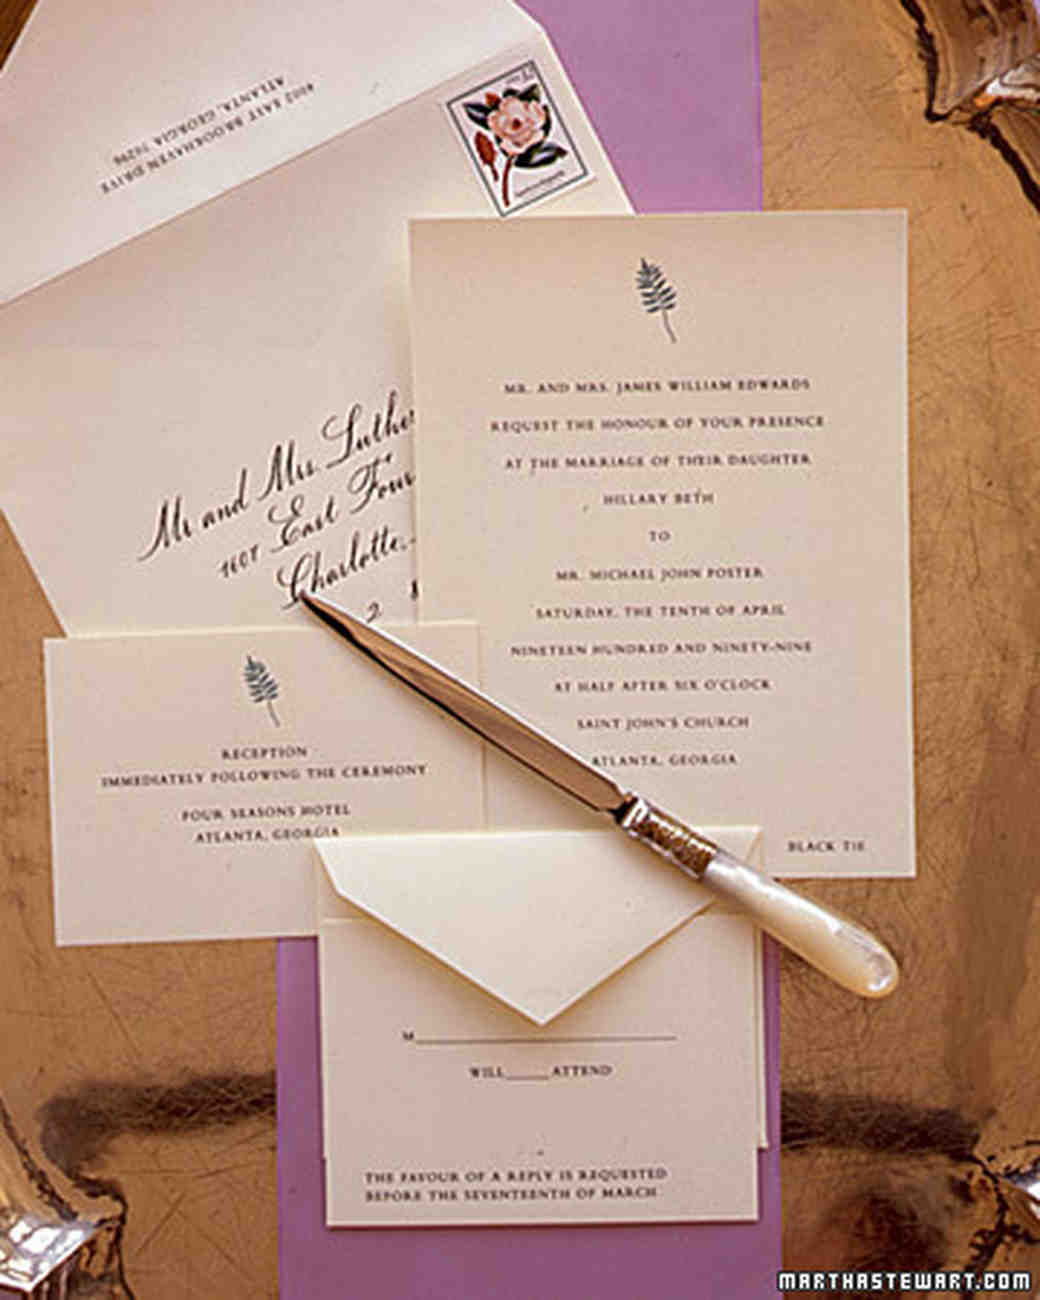 want watch Tom darbyshire would bonus